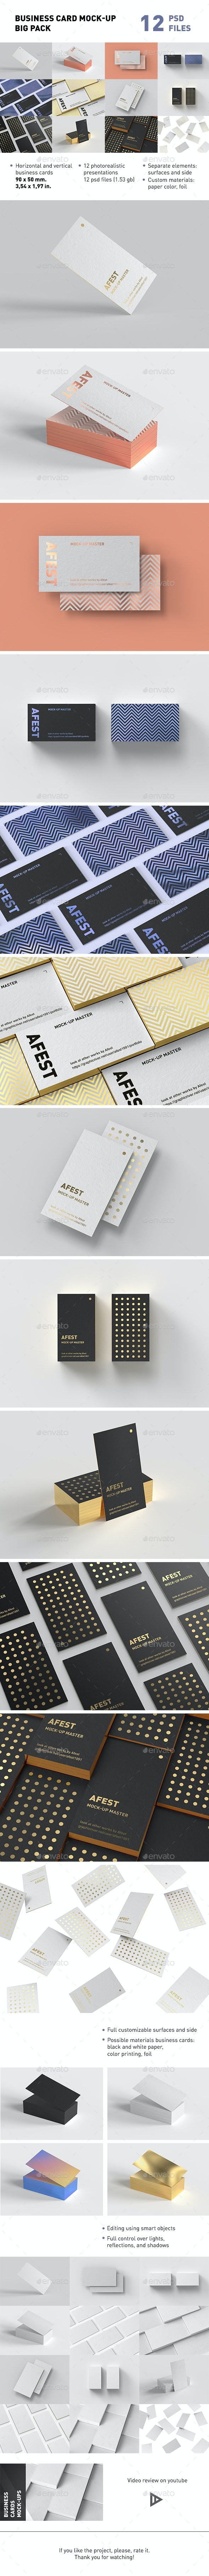 Business Card Mock-up Big Pack - Business Cards Print